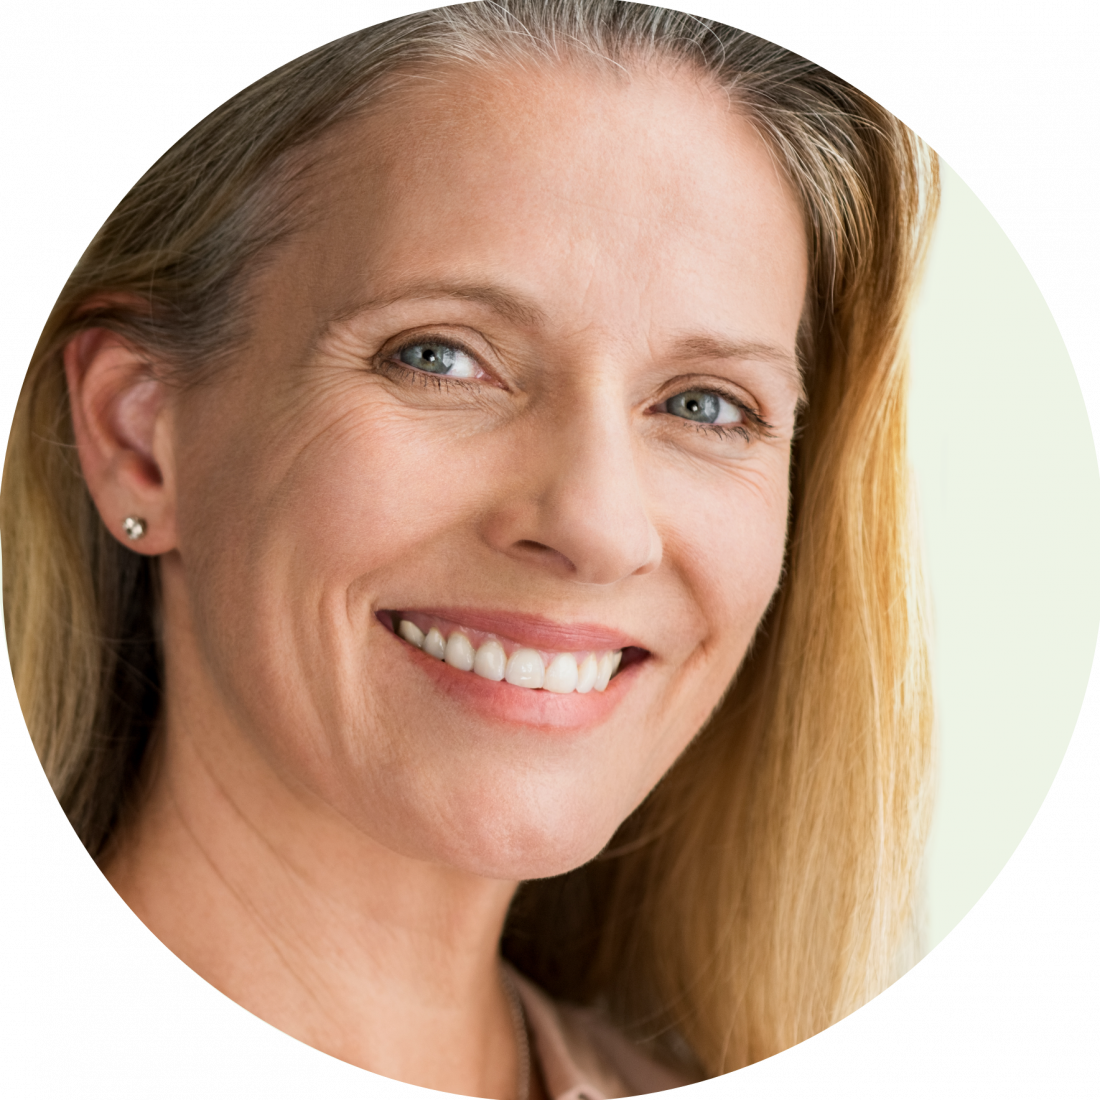 Why women choose Facelift?